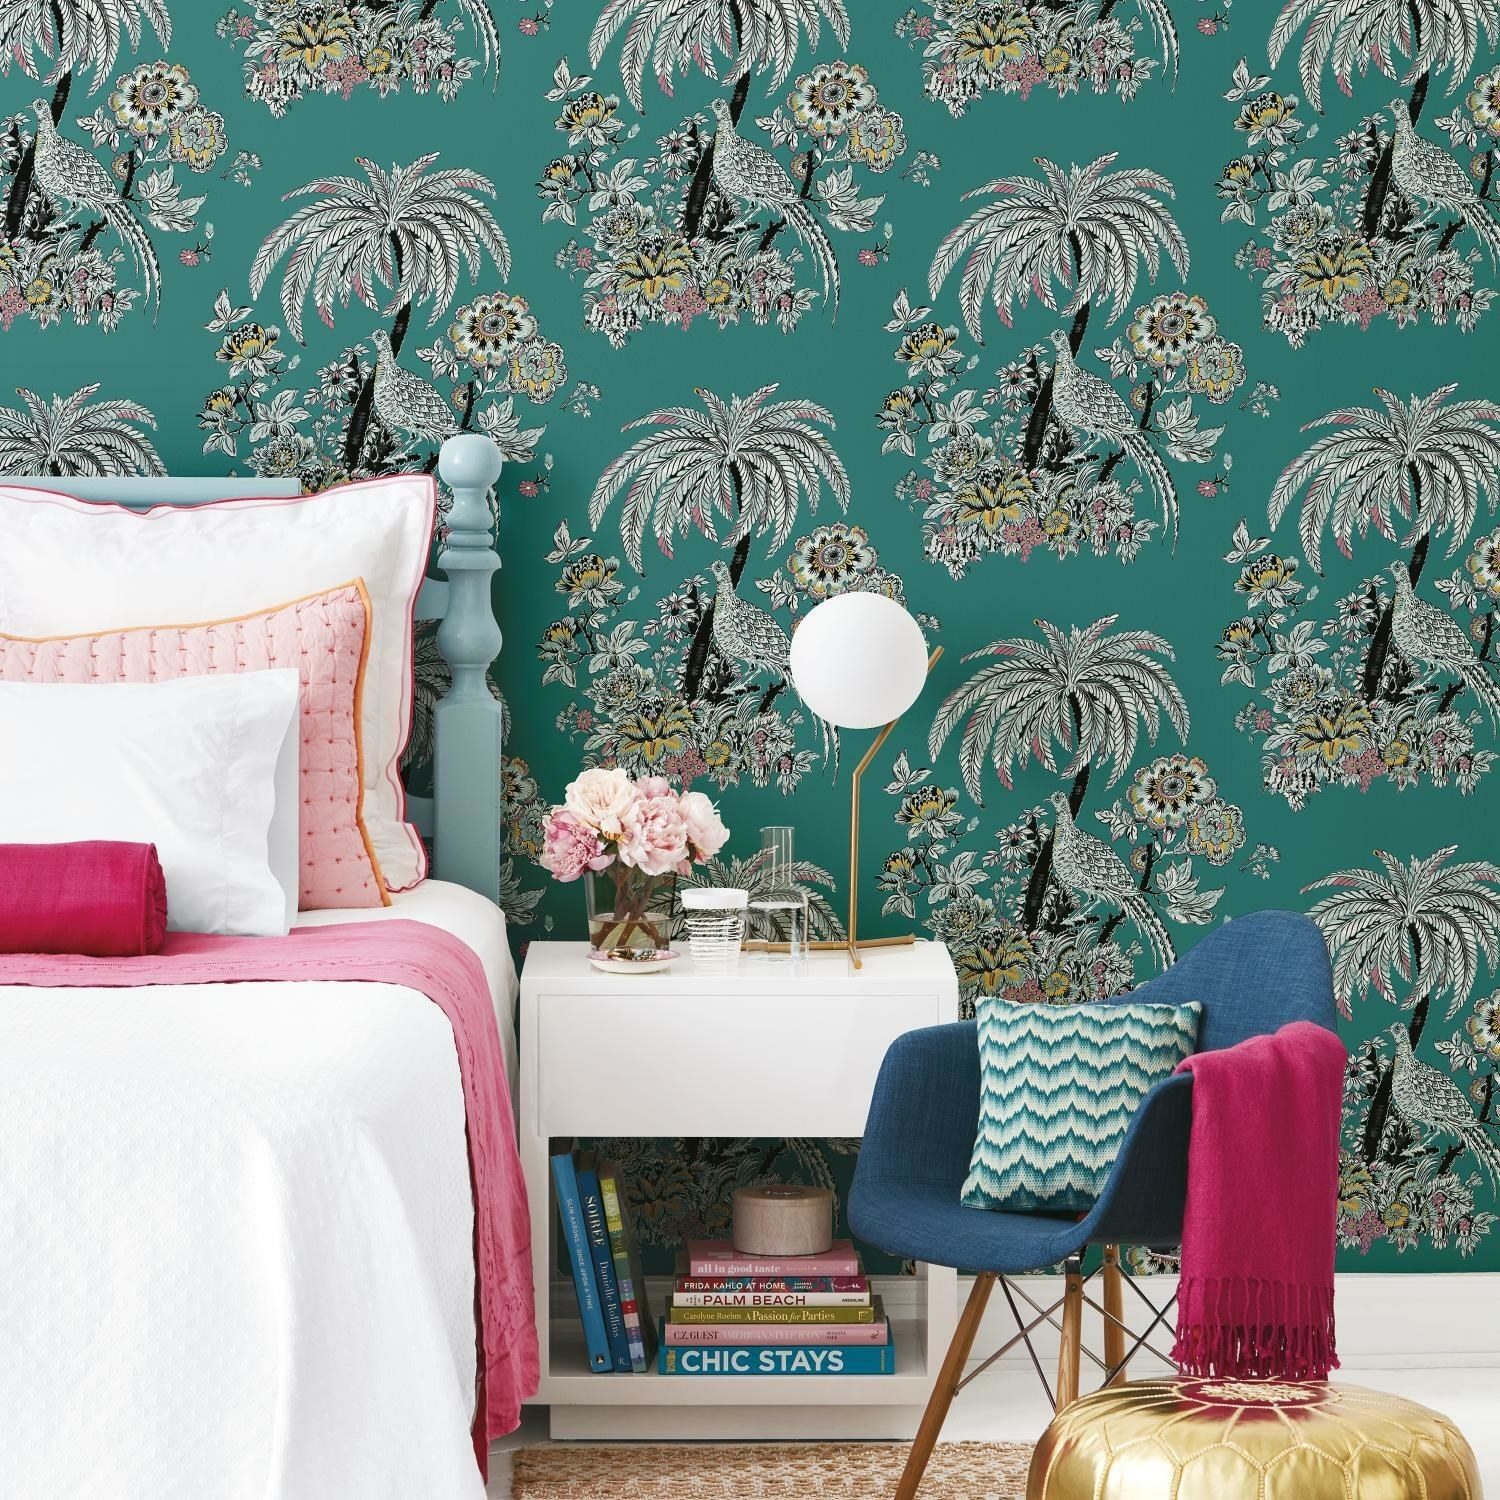 teal wallpaper with pink and yellow flowers and black and white peacocks